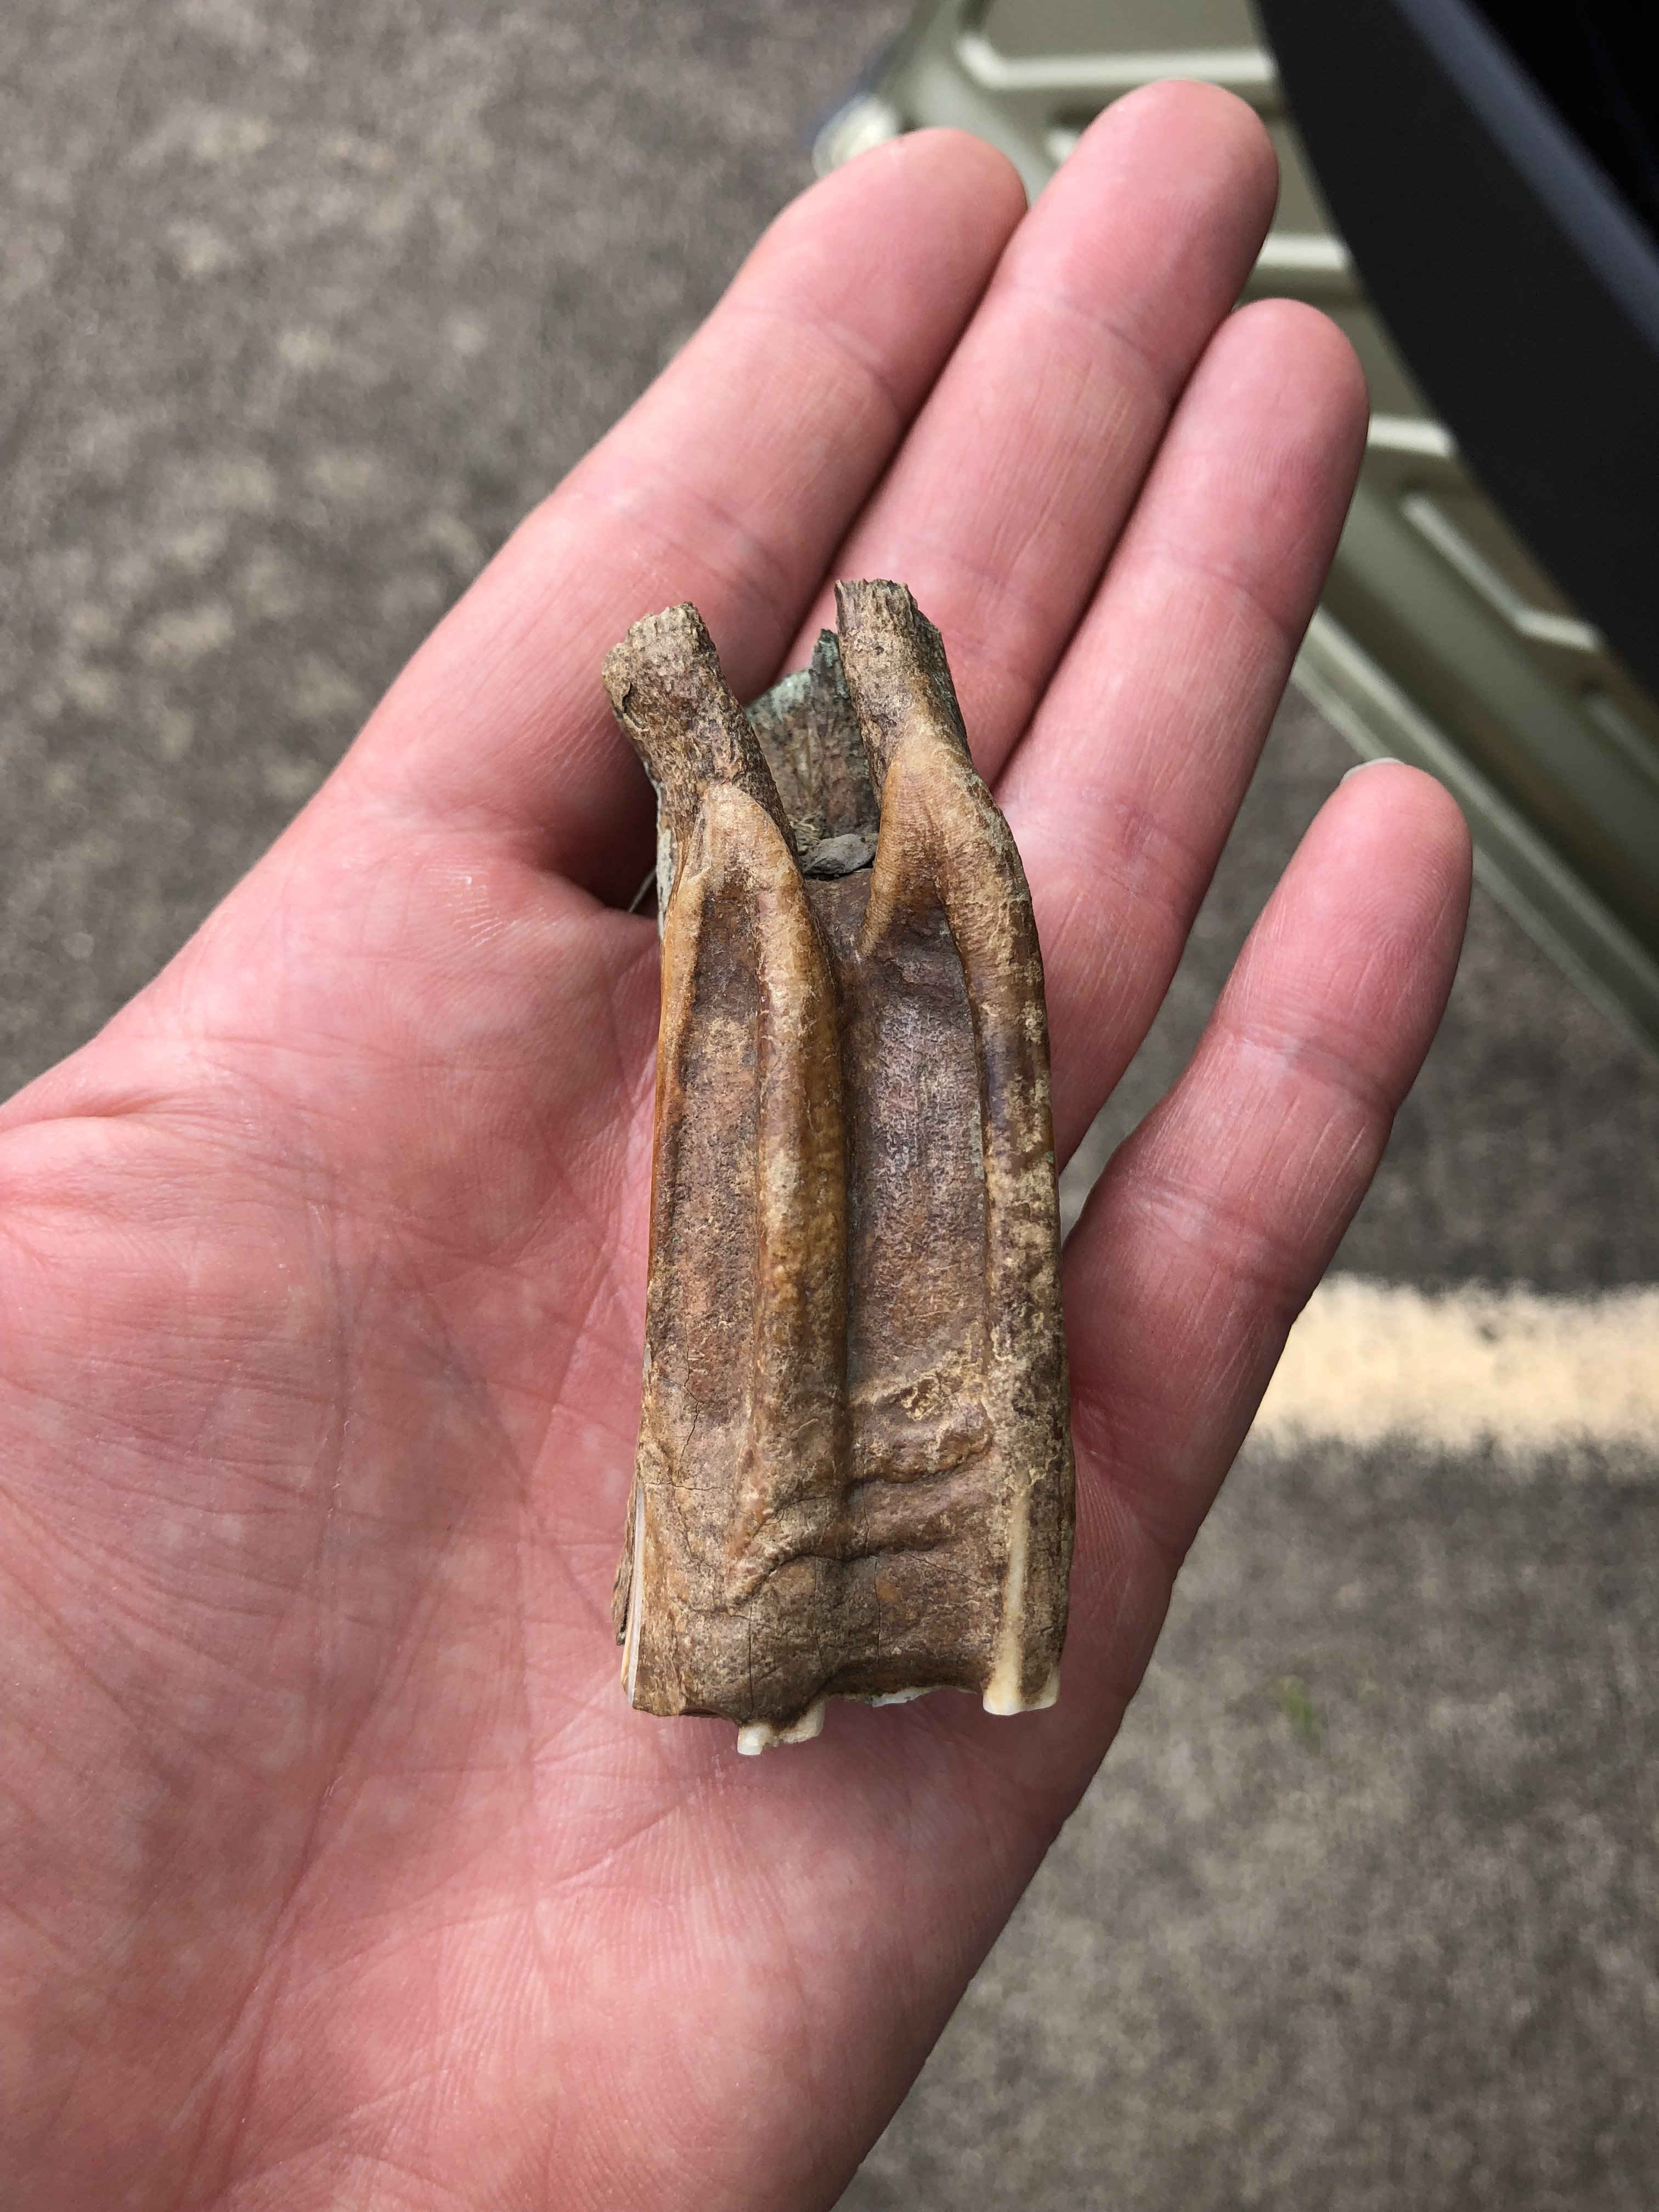 Prehistoric Horse Tooth Fossilized